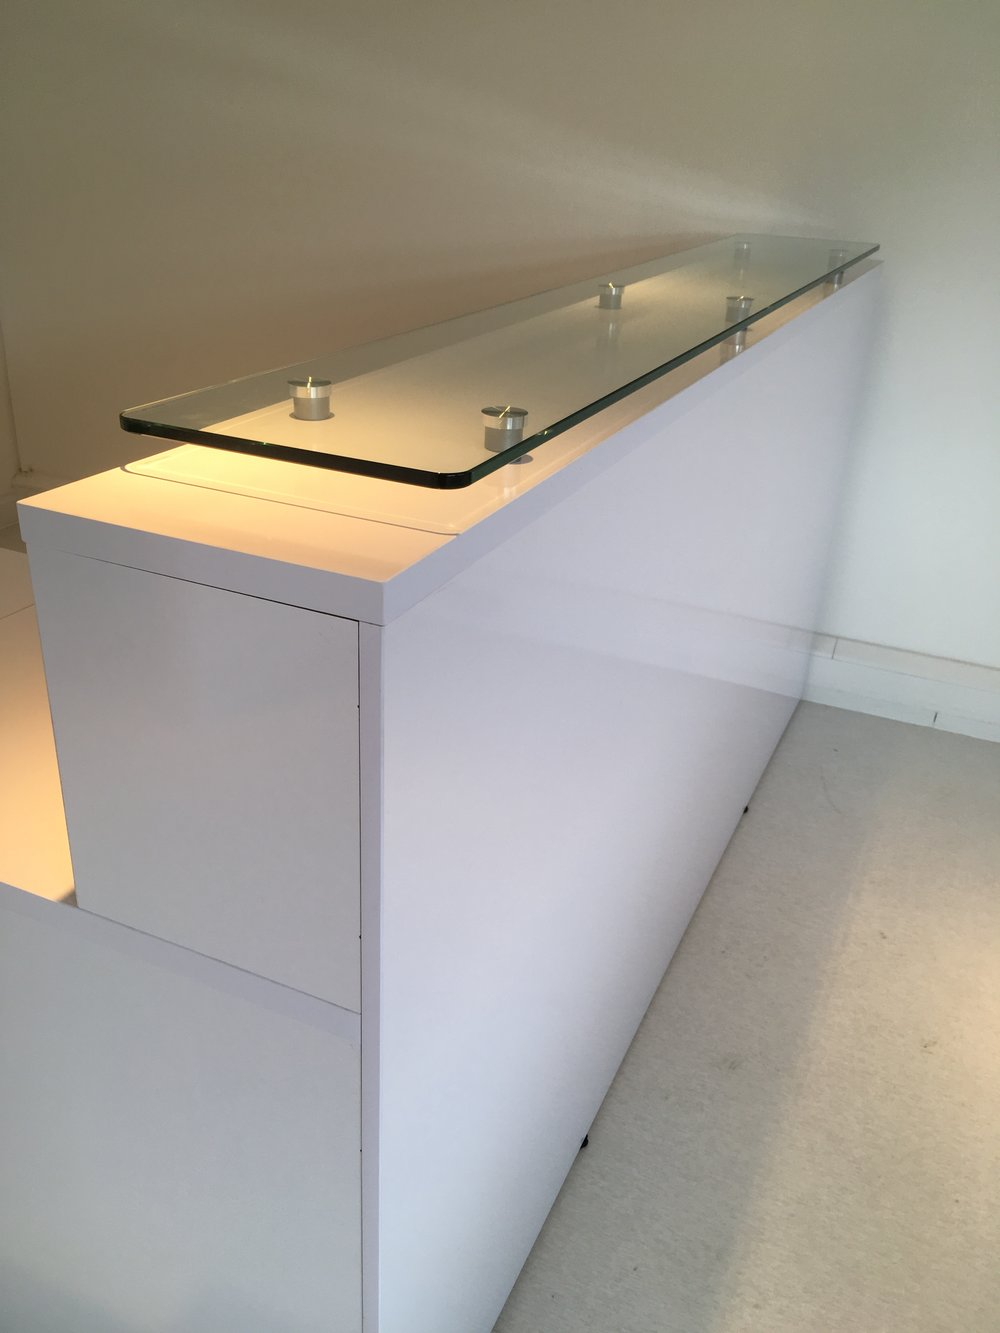 Office remodelling - design and refit - Littlehampton manufacturing sector_5